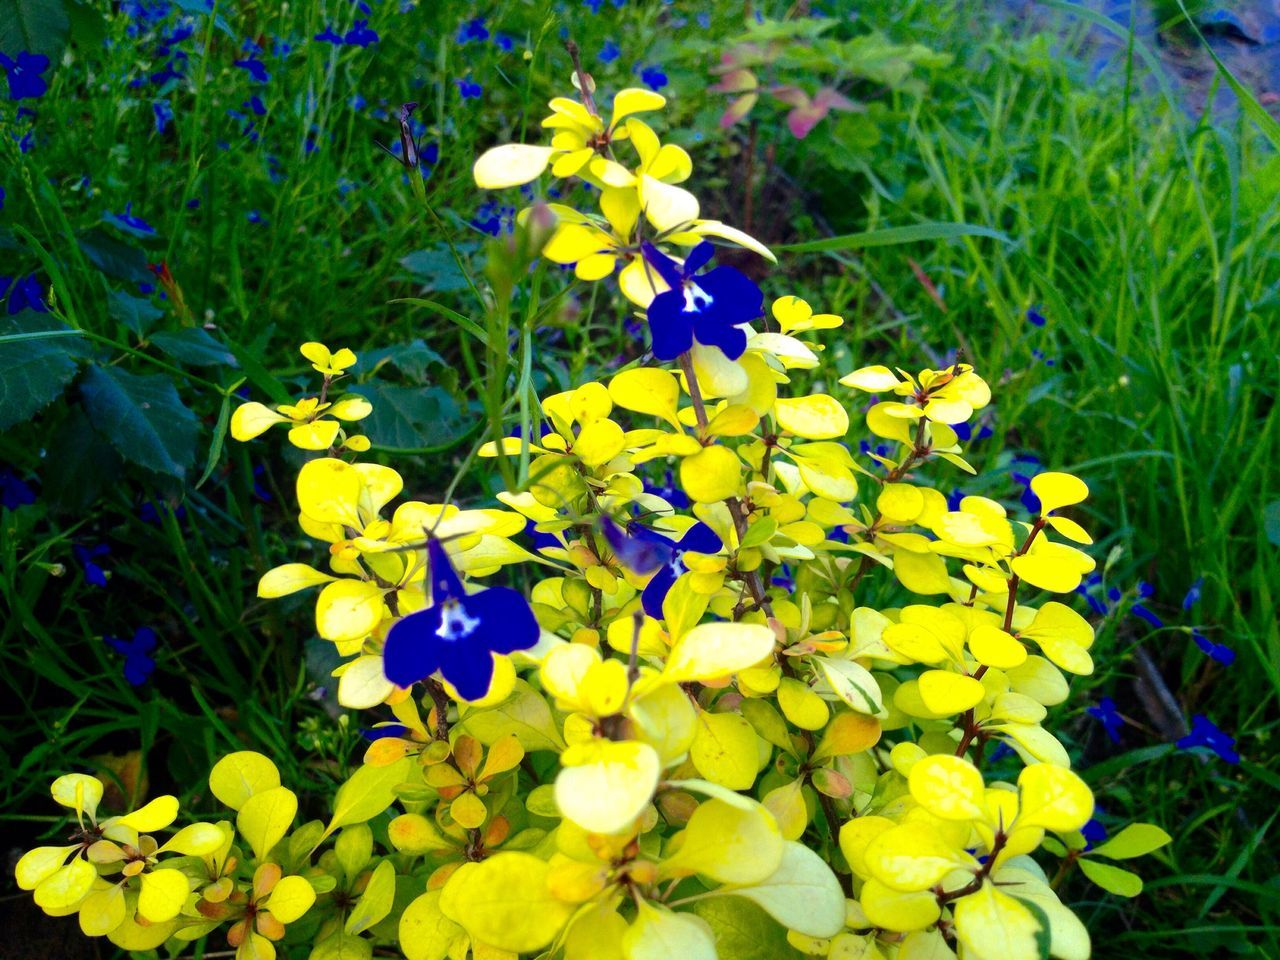 flower, yellow, petal, fragility, growth, beauty in nature, freshness, nature, plant, flower head, purple, blooming, outdoors, pansy, day, field, blue, no people, grass, close-up, crocus